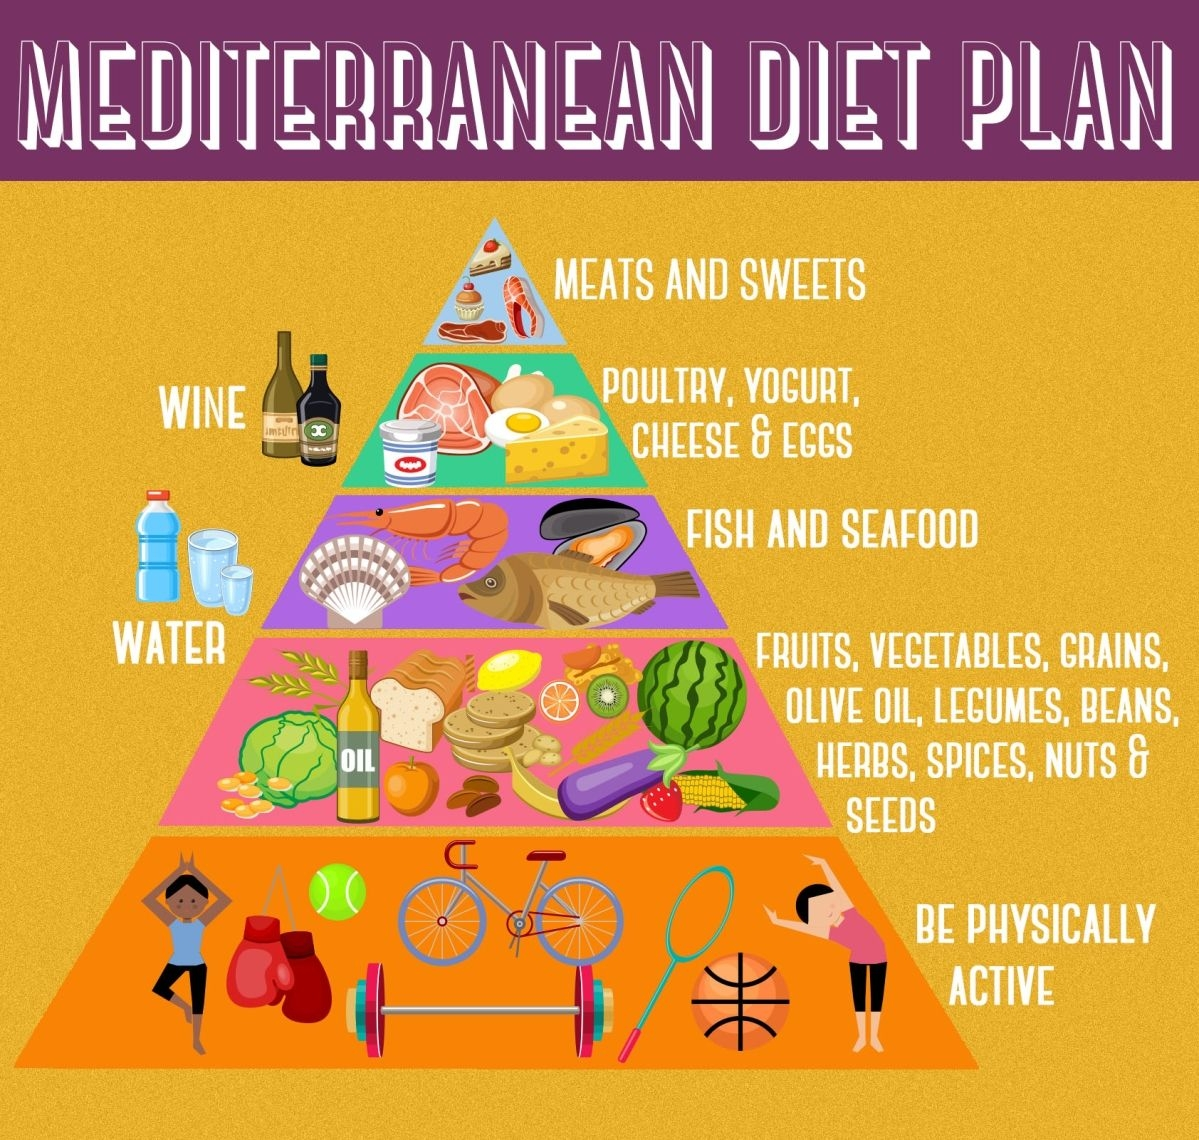 Forget keto - the Mediterranean diet was just named the best for 2019